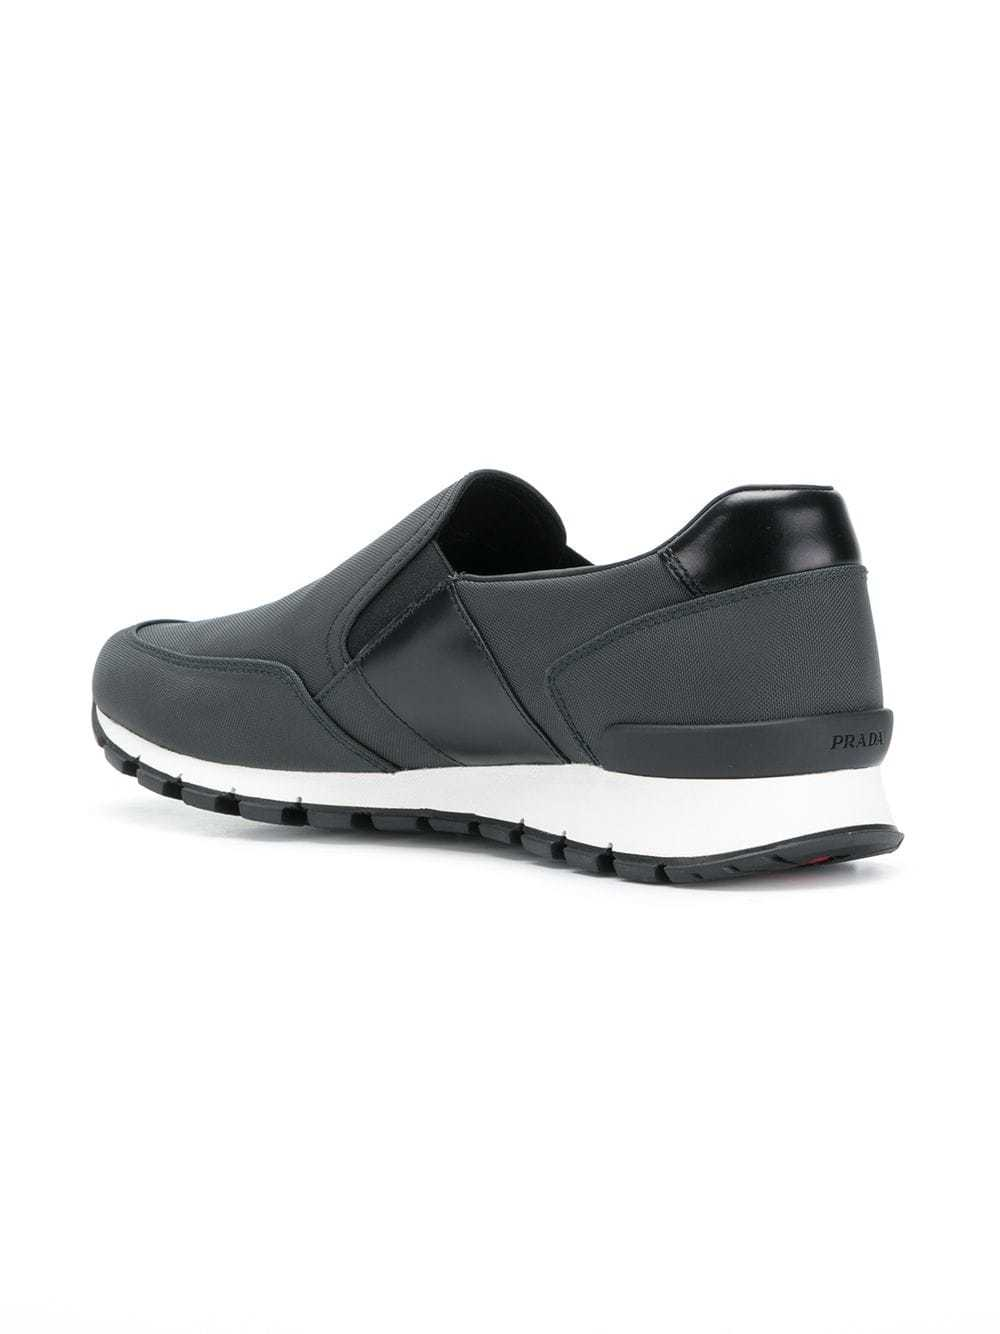 attractive style skilful manufacture classcic £454, Prada Laceless Sporty Sneakers Unavailable